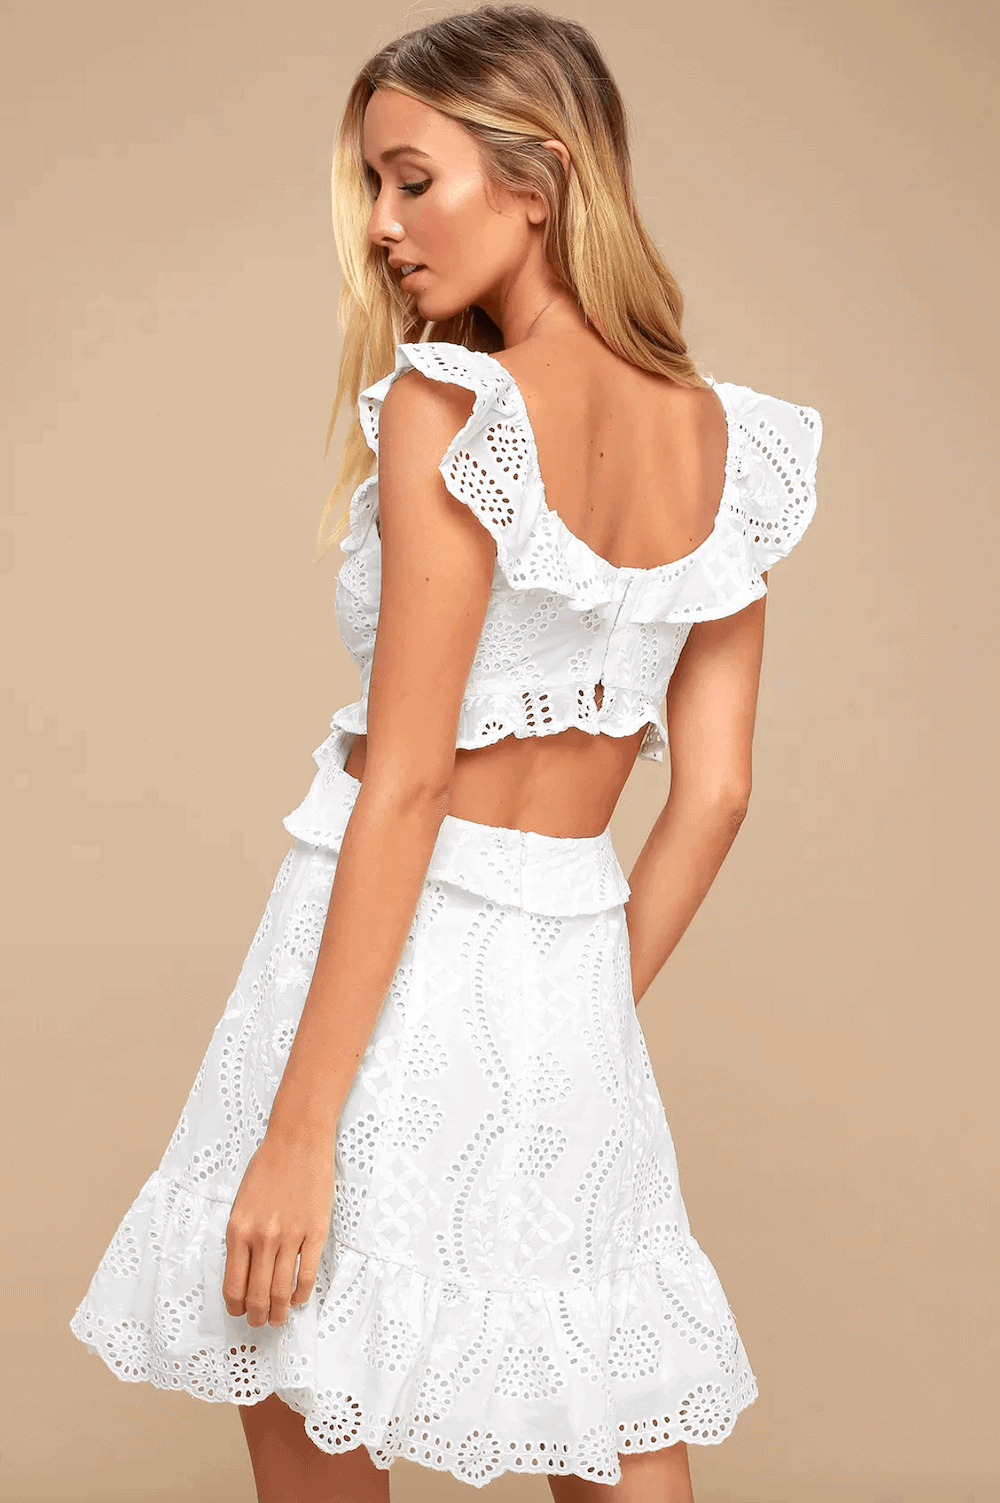 Summer Outfits Sundresses Beach Casual Ivory Eyelet Lace Cutout Skater Dress Lulus 2